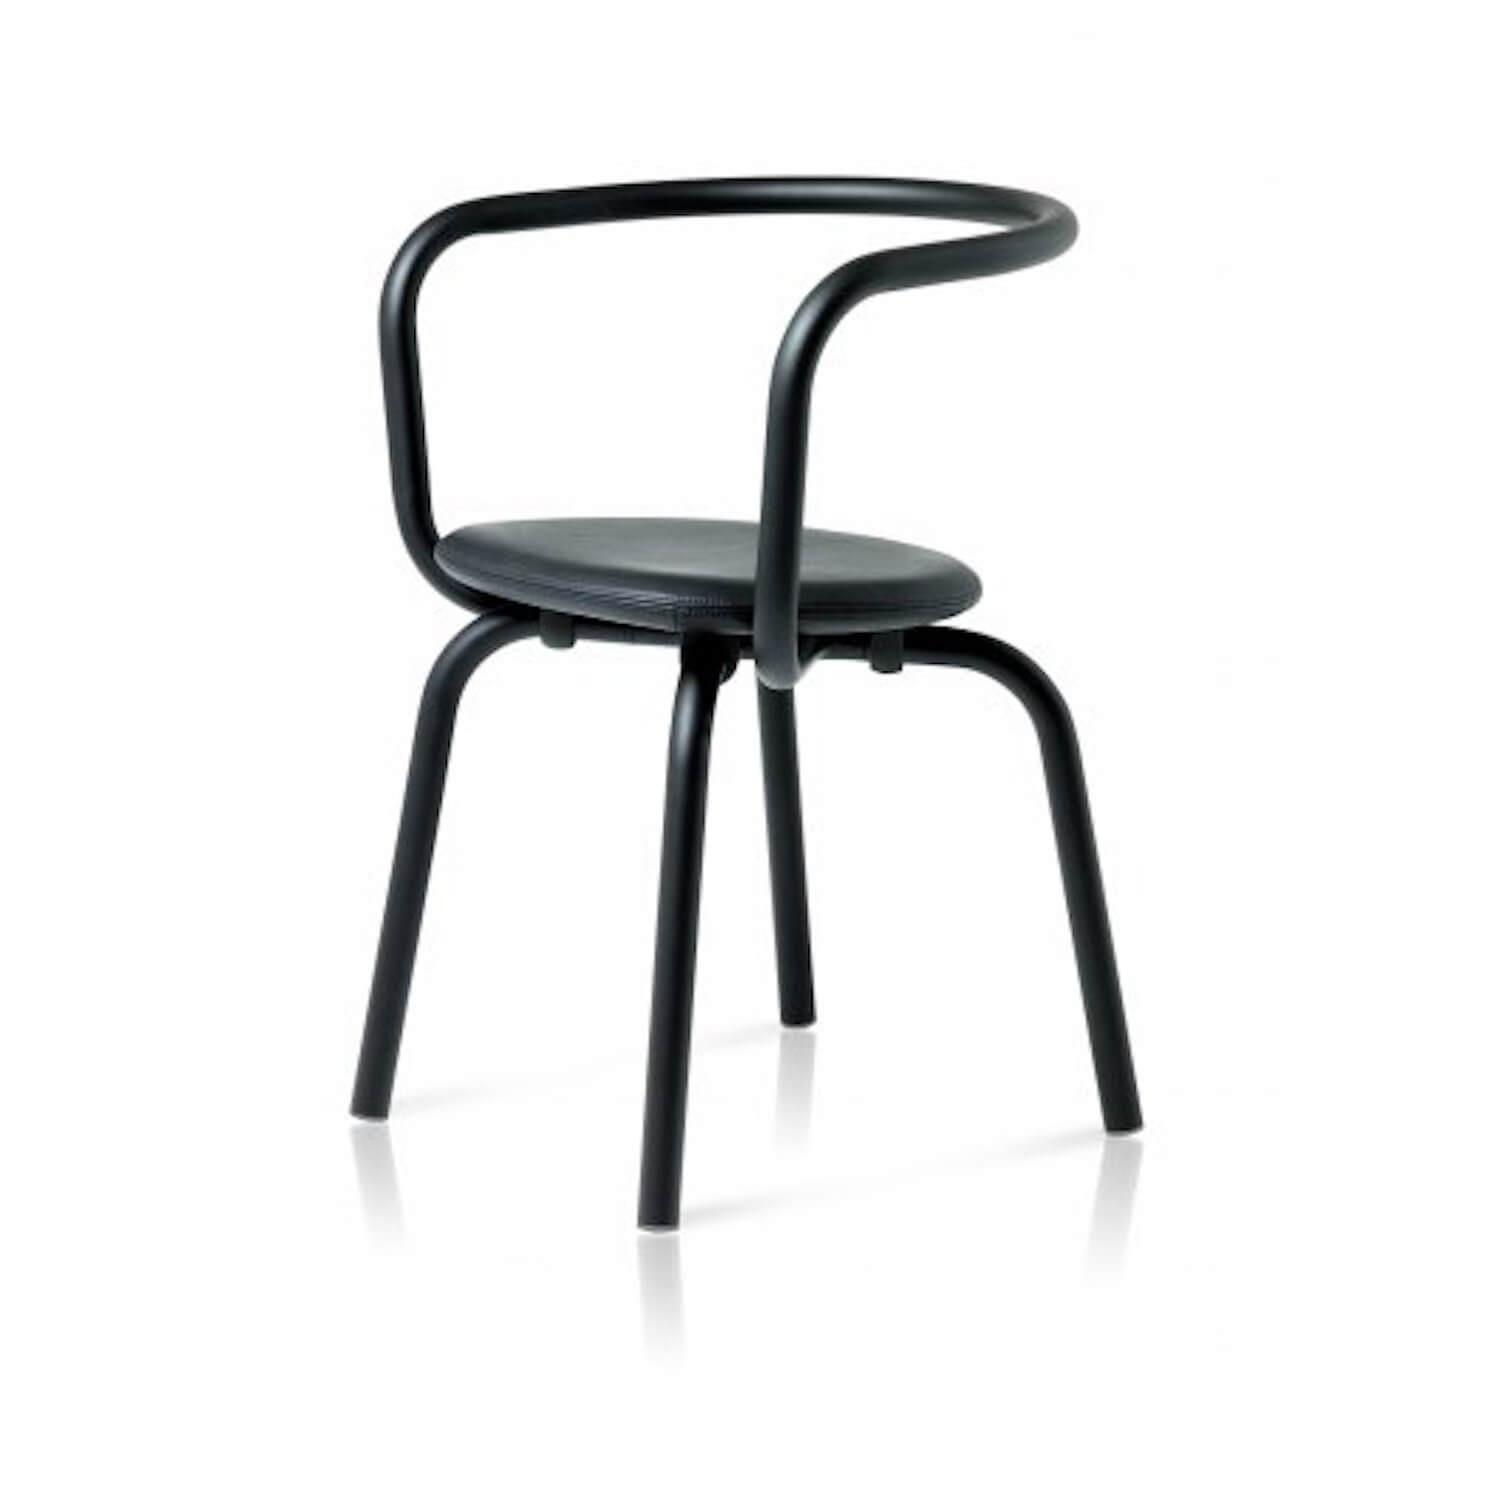 parrish chair emeco cult